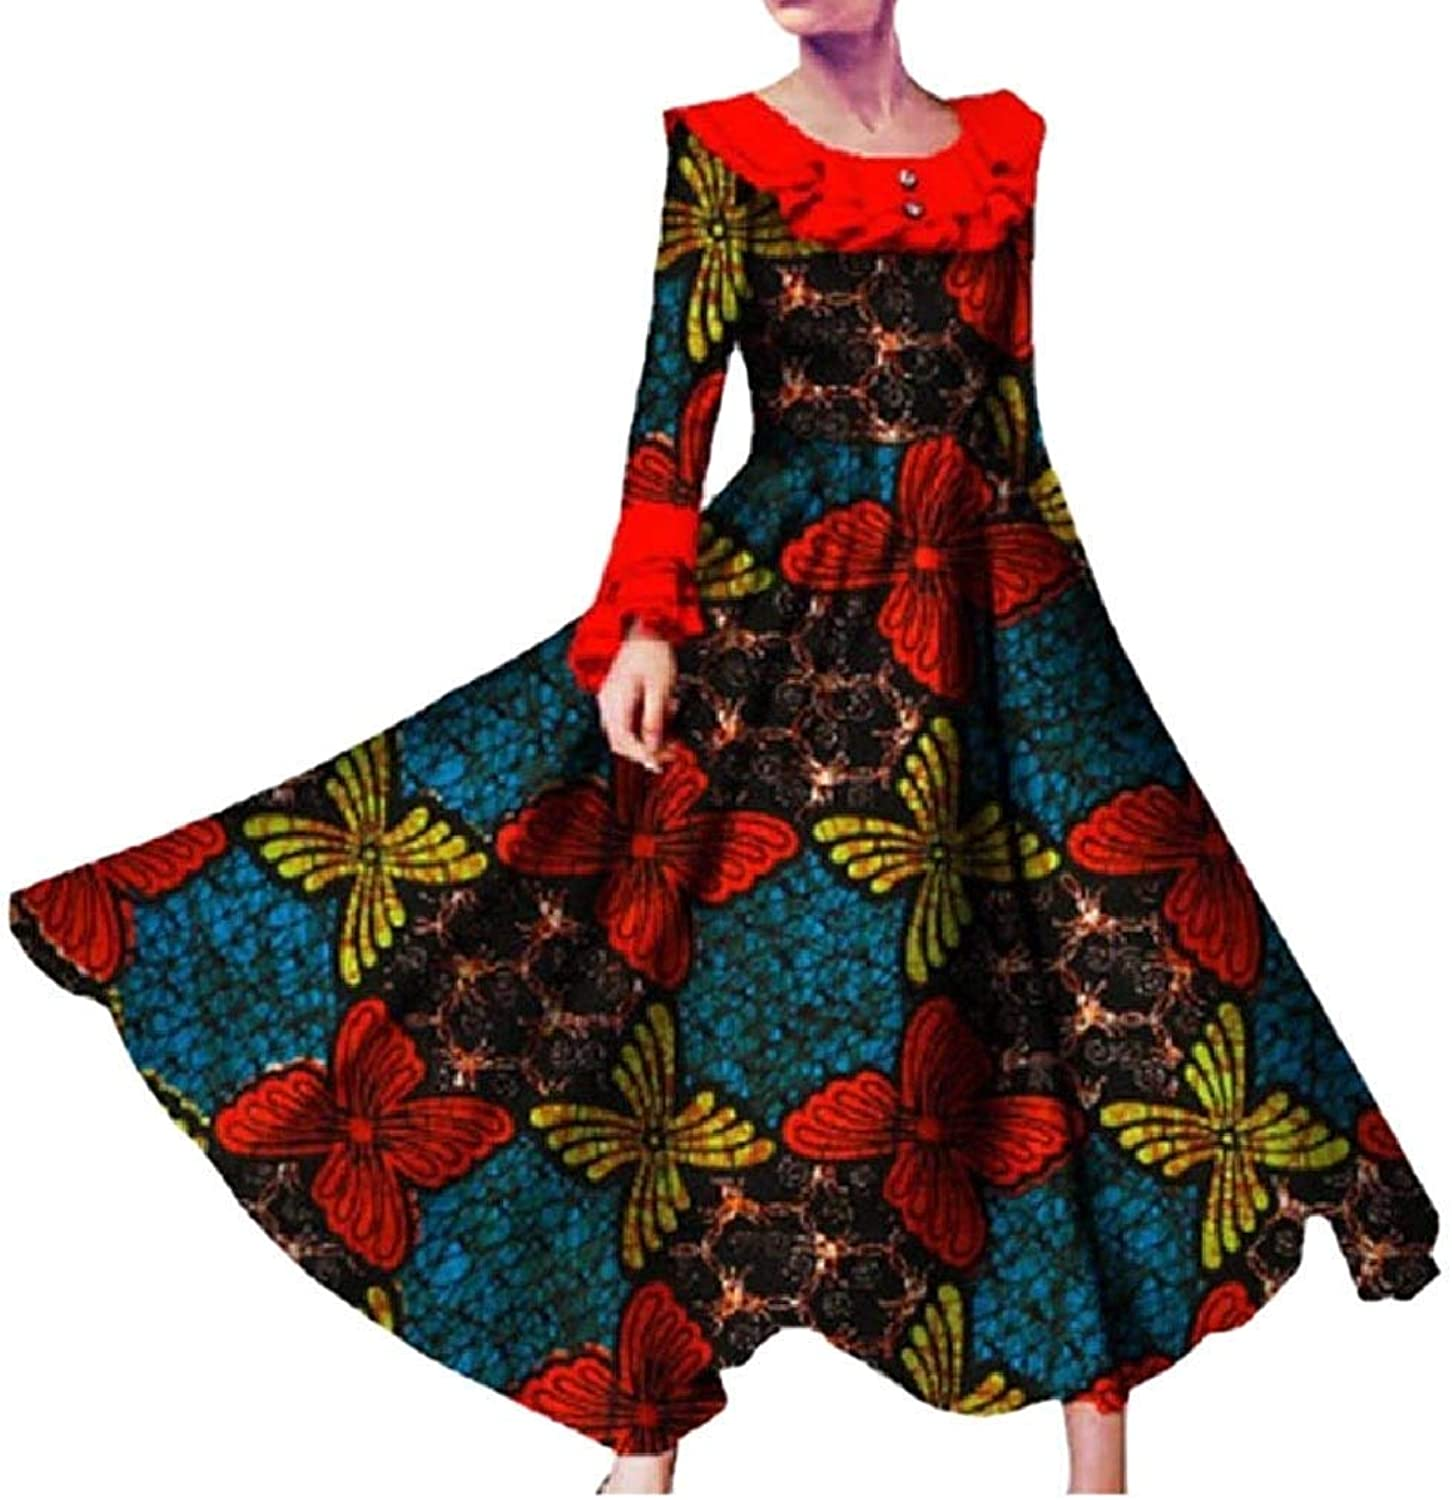 Joyccu Women's Party Plus Size African Dashiki Batik Long Sleeve Long Dress